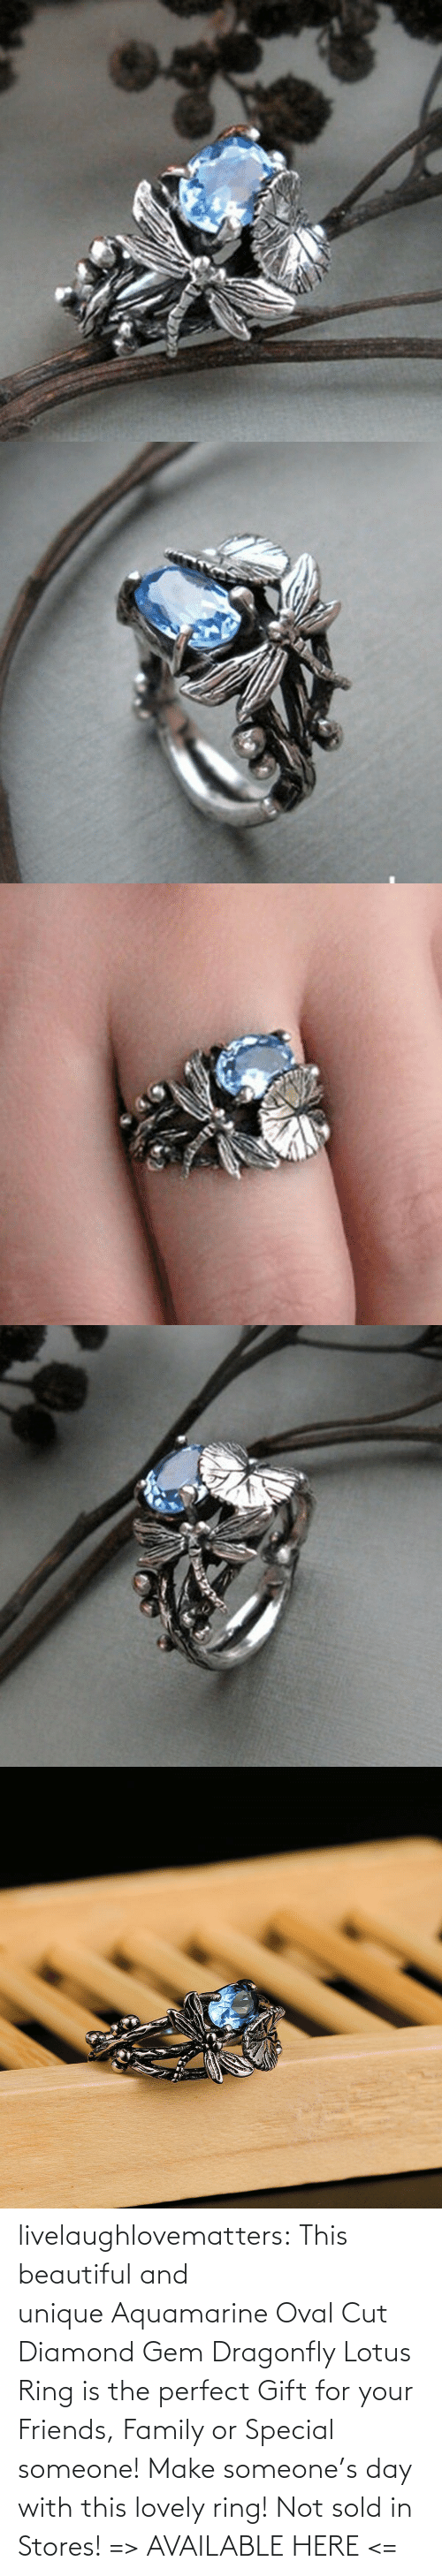 Sold: livelaughlovematters: This beautiful and uniqueAquamarine Oval Cut Diamond Gem Dragonfly Lotus Ring is the perfect Gift for your Friends, Family or Special someone! Make someone's day with this lovely ring! Not sold in Stores! => AVAILABLE HERE <=